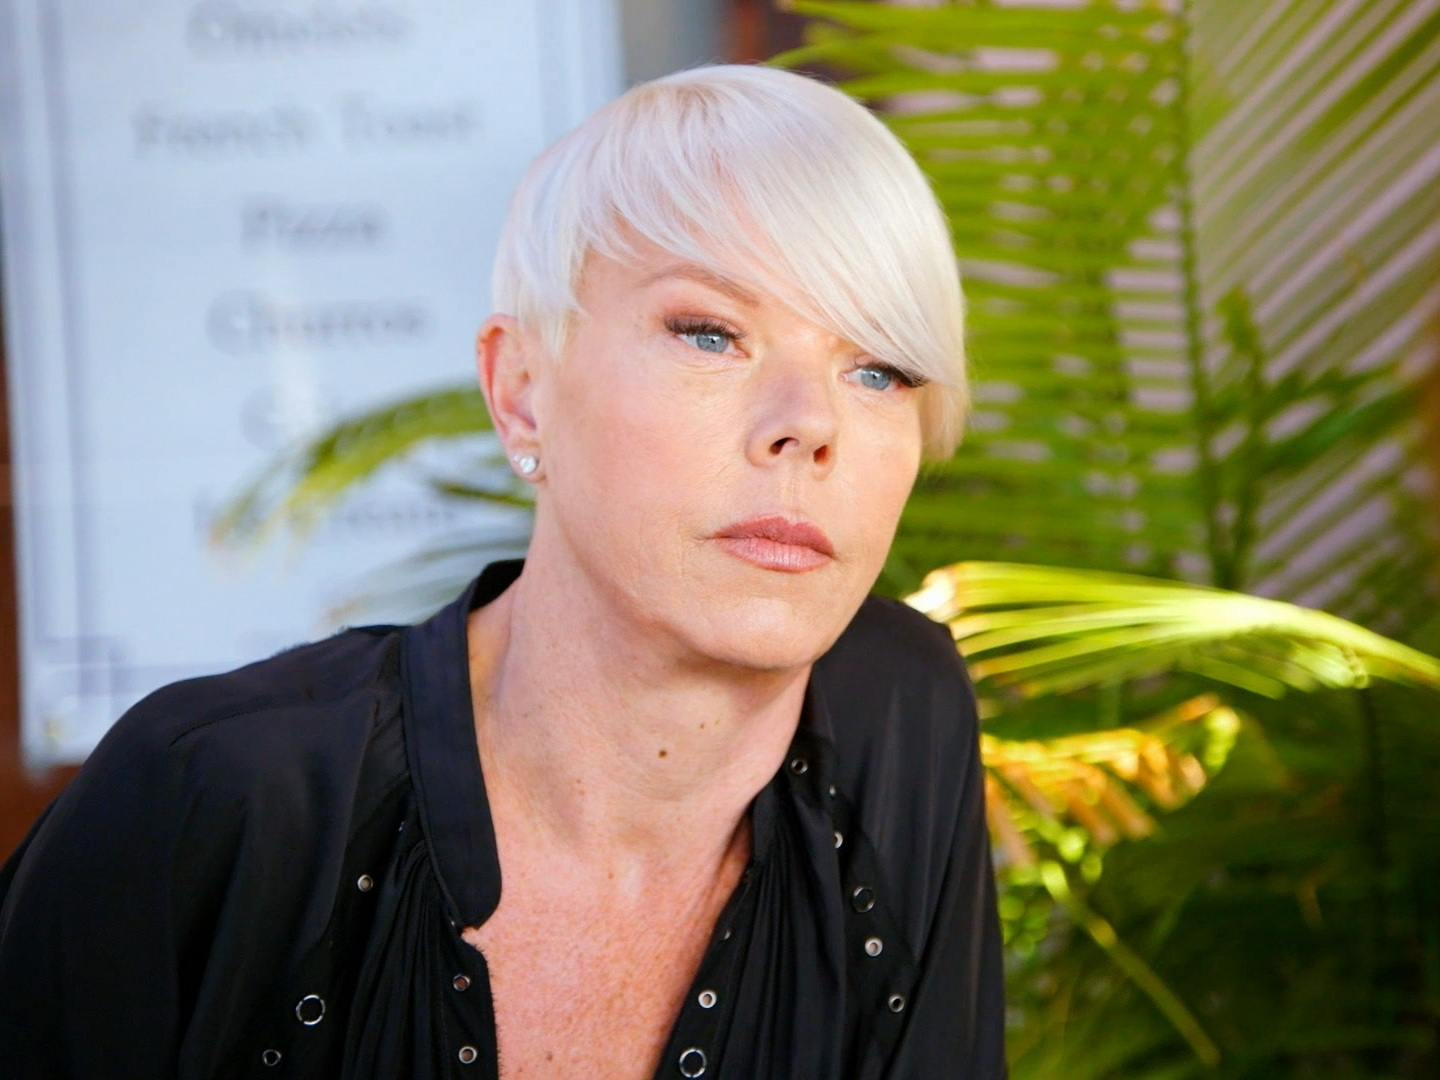 Tabatha Coffey. Source: Bravotv.com